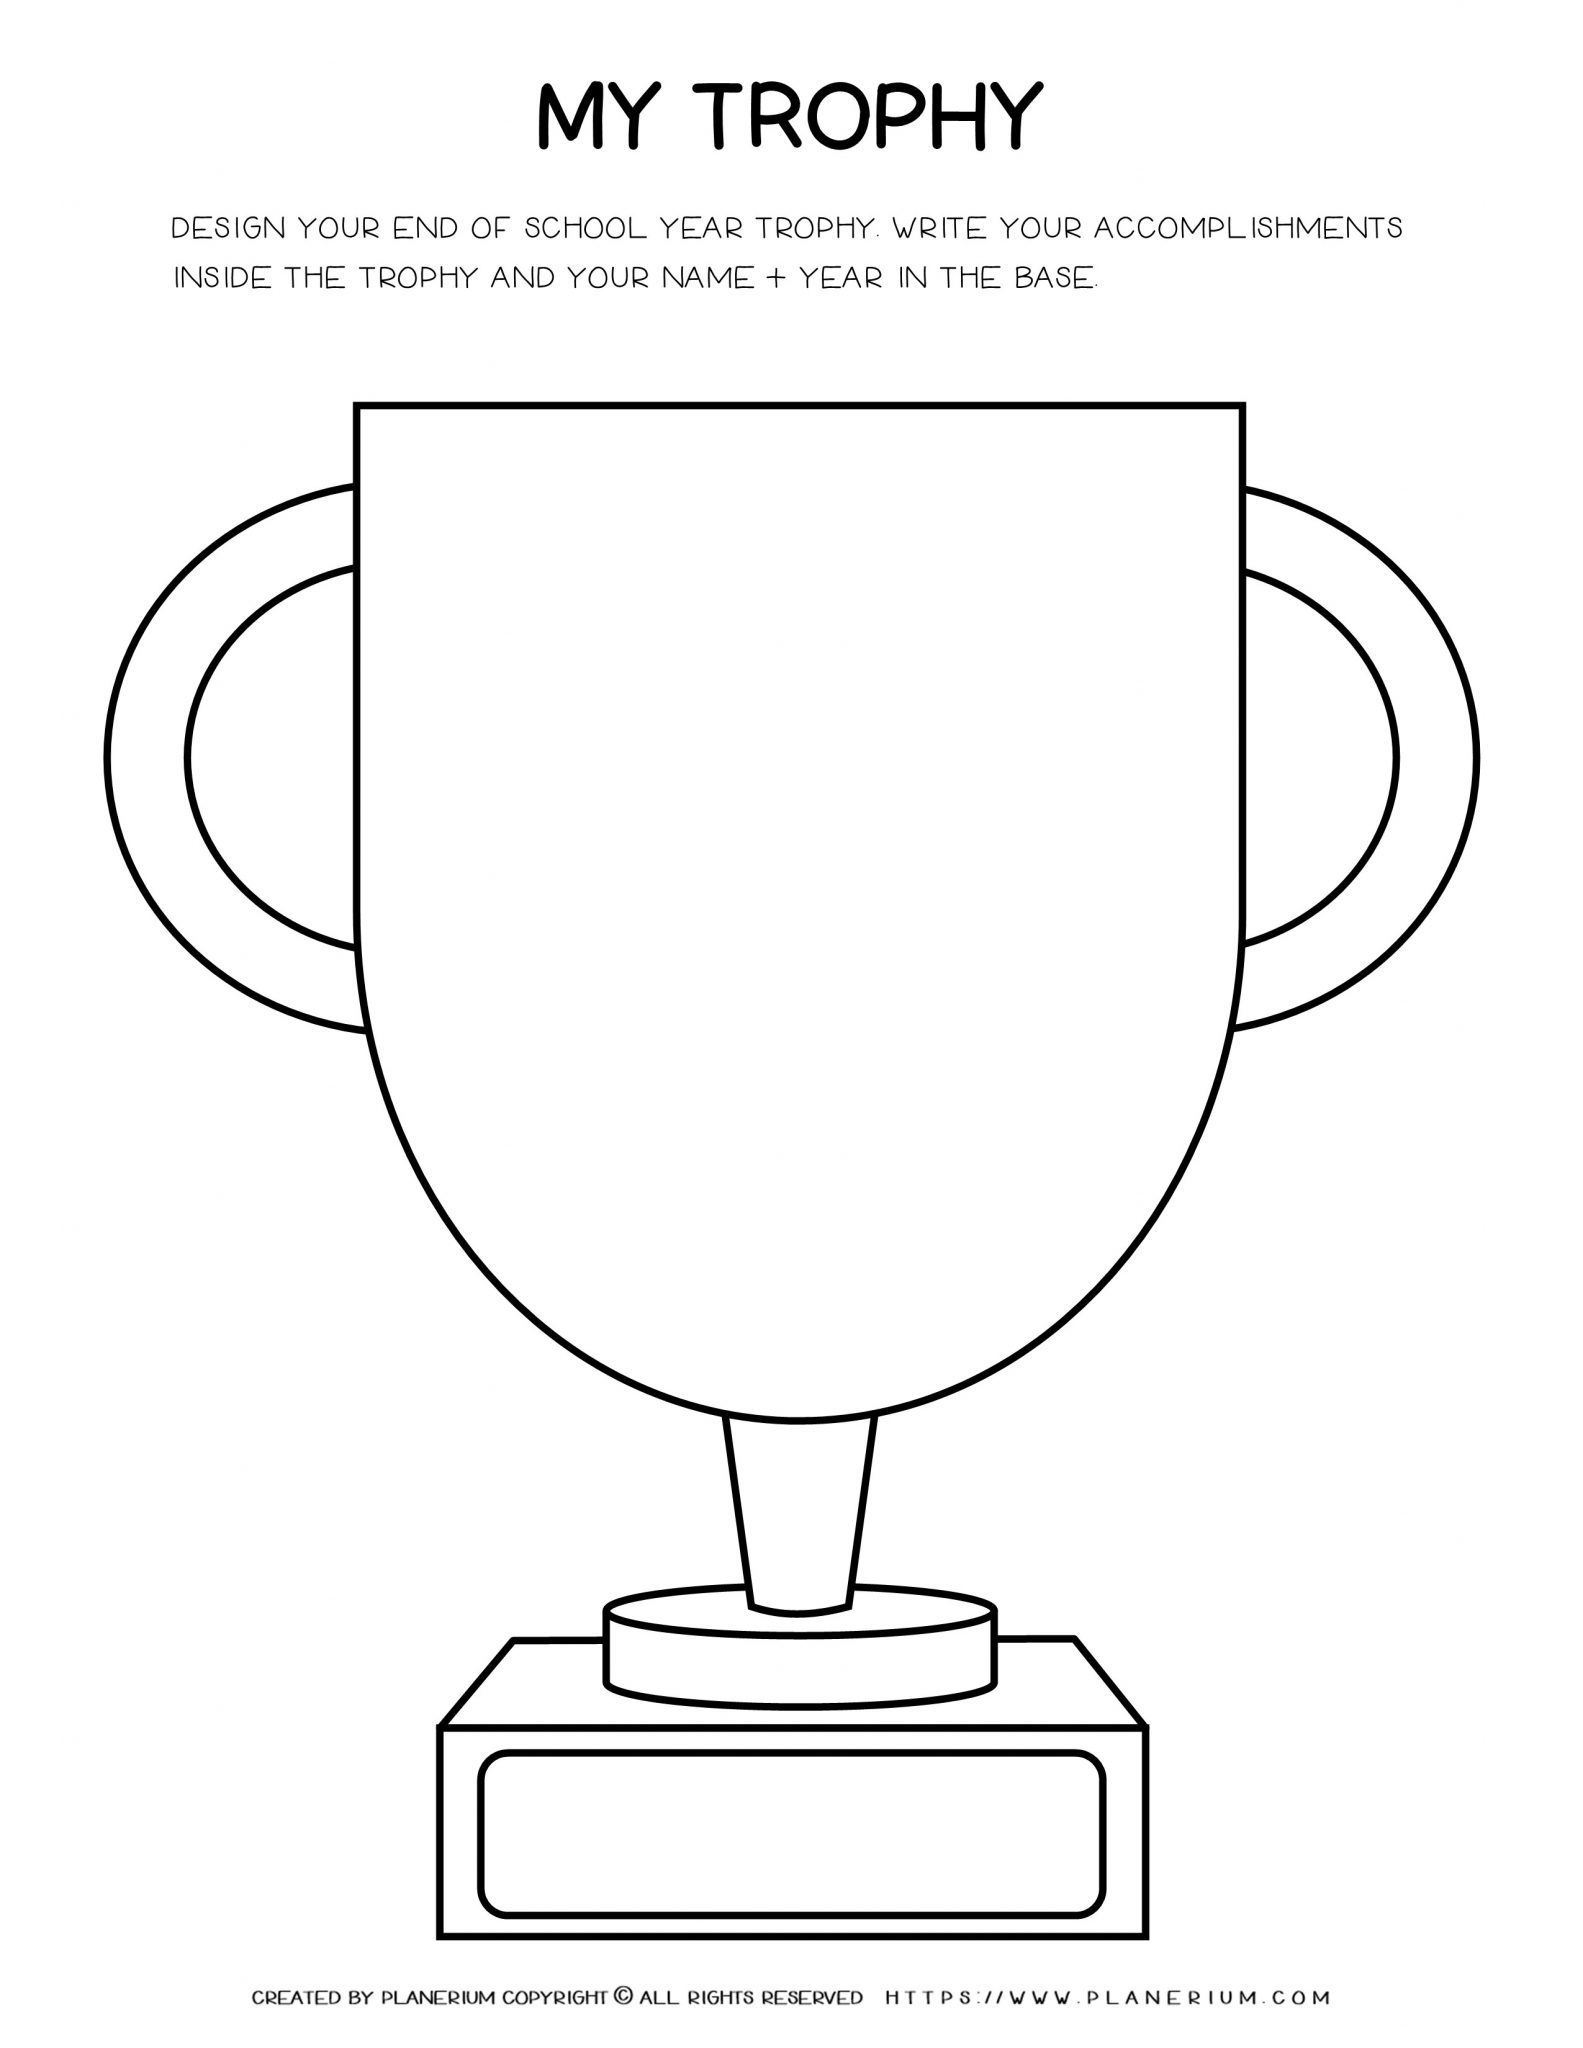 End of Year - Worksheet - Design My Trophy